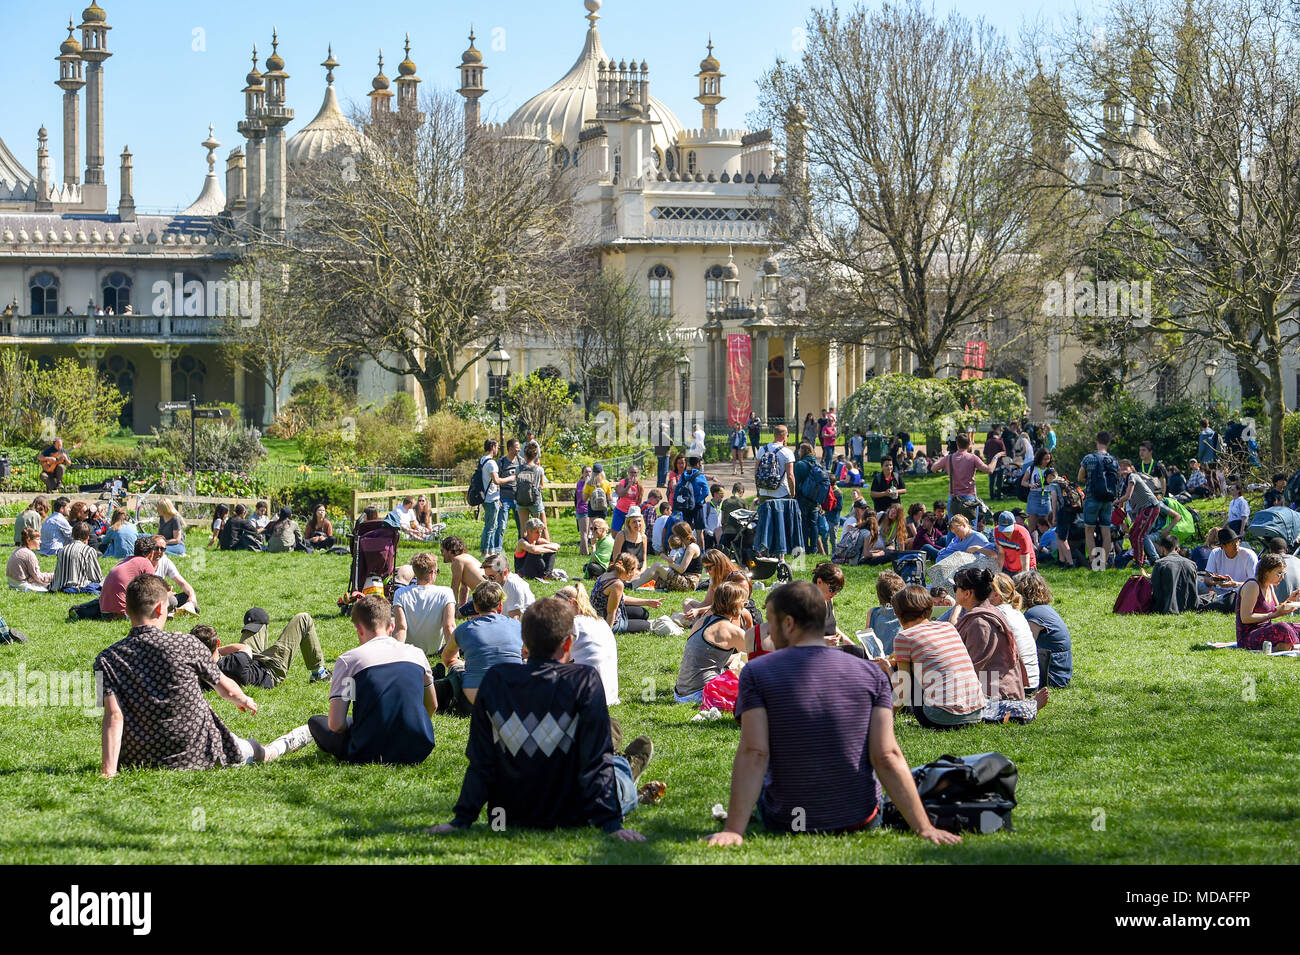 Brighton UK 19th April 2018  - Pavilion Gardens in Brighton is packed as visitors enjoy the hot sunshine today . The hot sunny weather is set to continue throughout Britain with temperatures expected to reach into the high twenties in parts of the South East Credit: Simon Dack/Alamy Live News - Stock Image